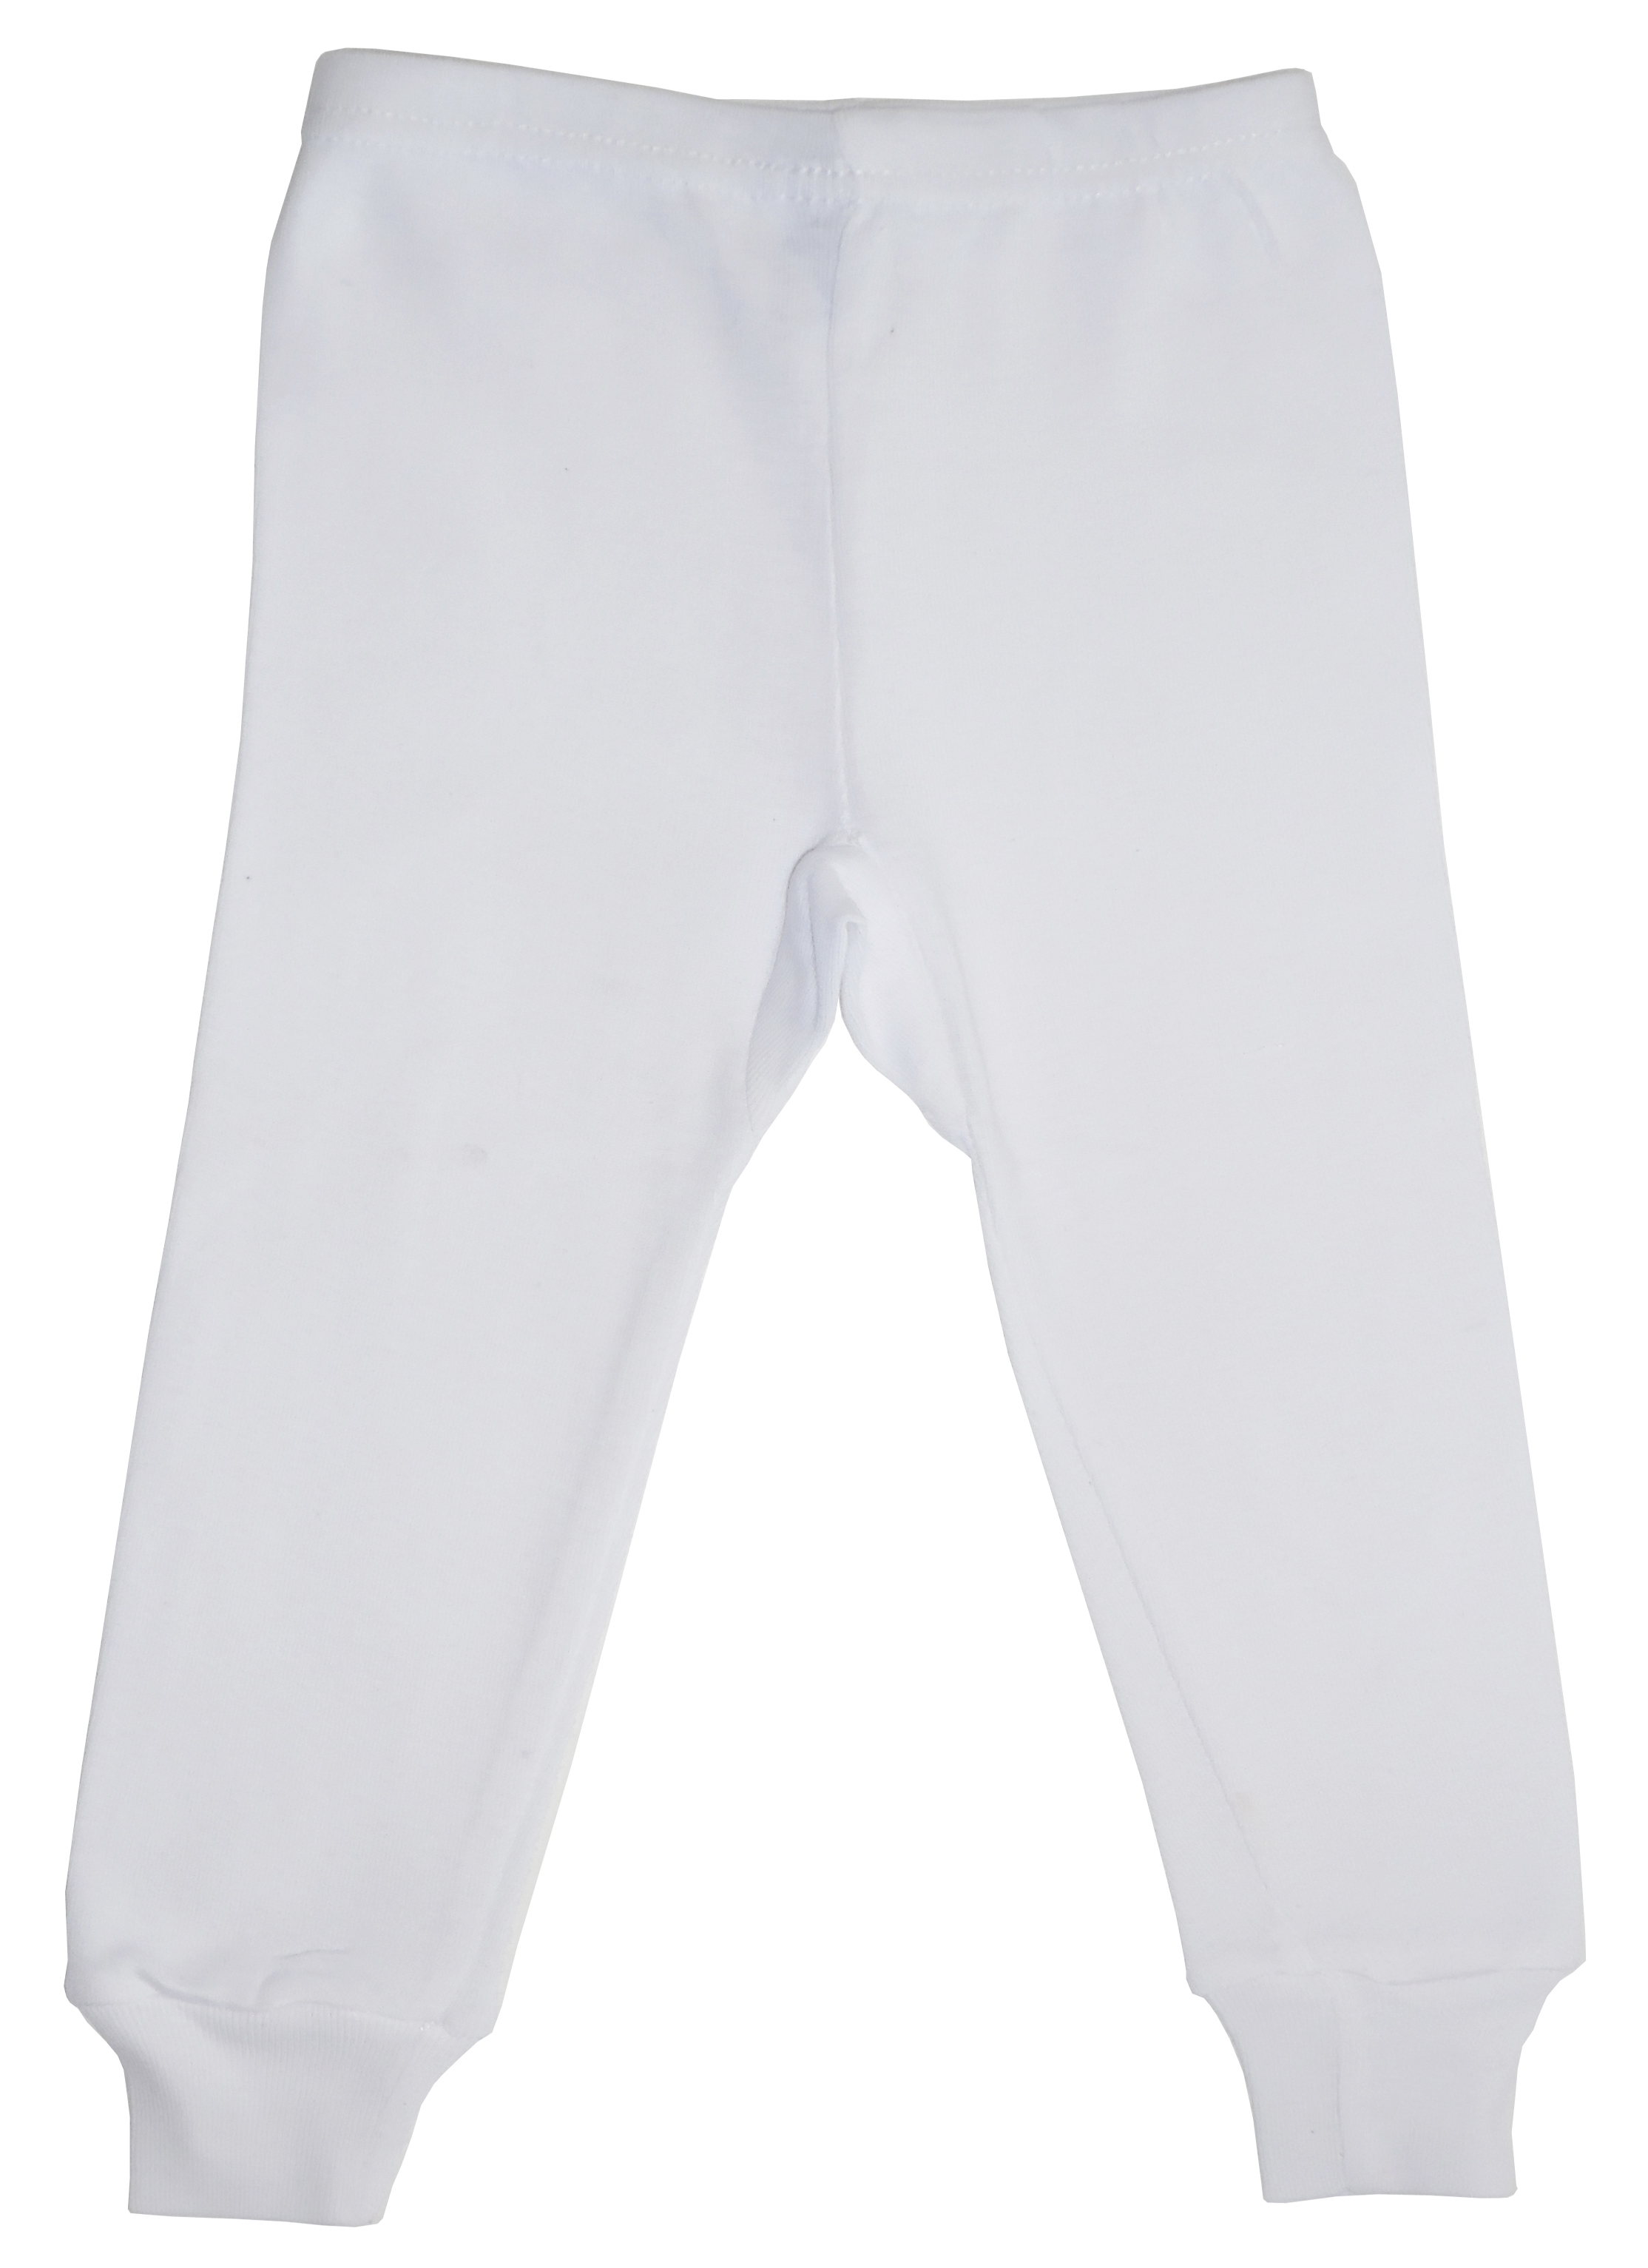 White Long PANTS